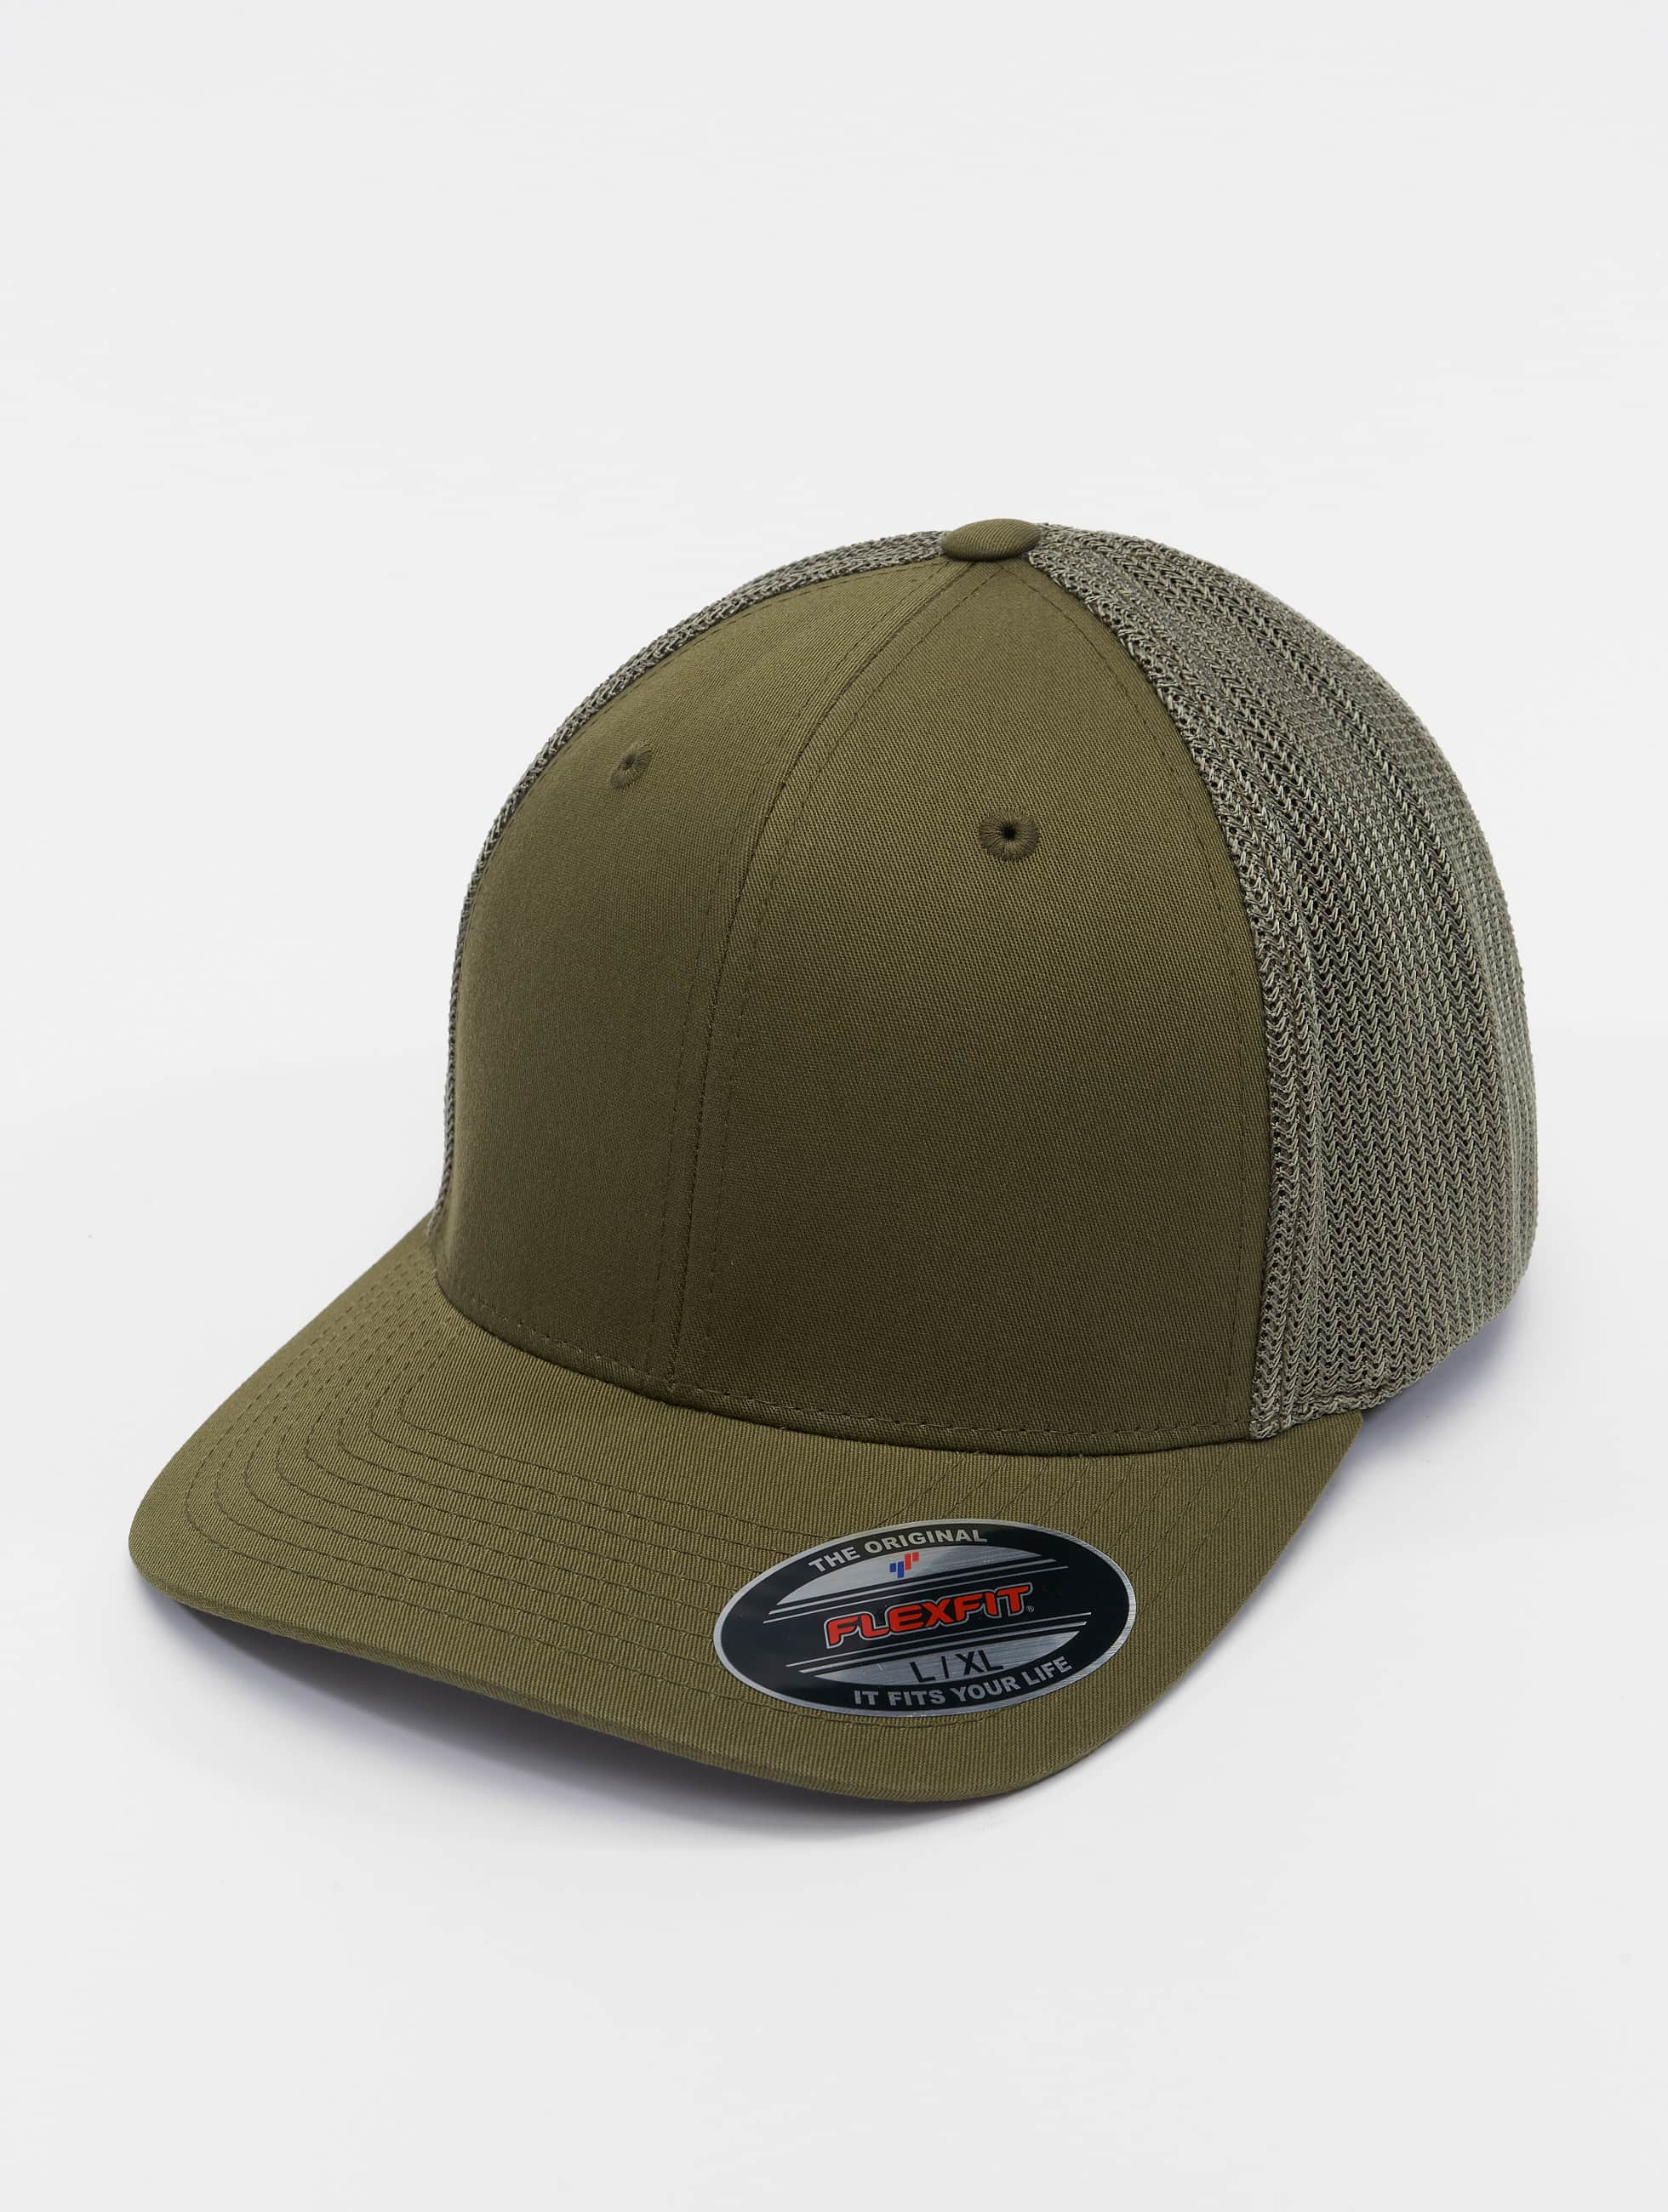 Flexfit Flexfitted Cap Mesh Cotton Twill olive